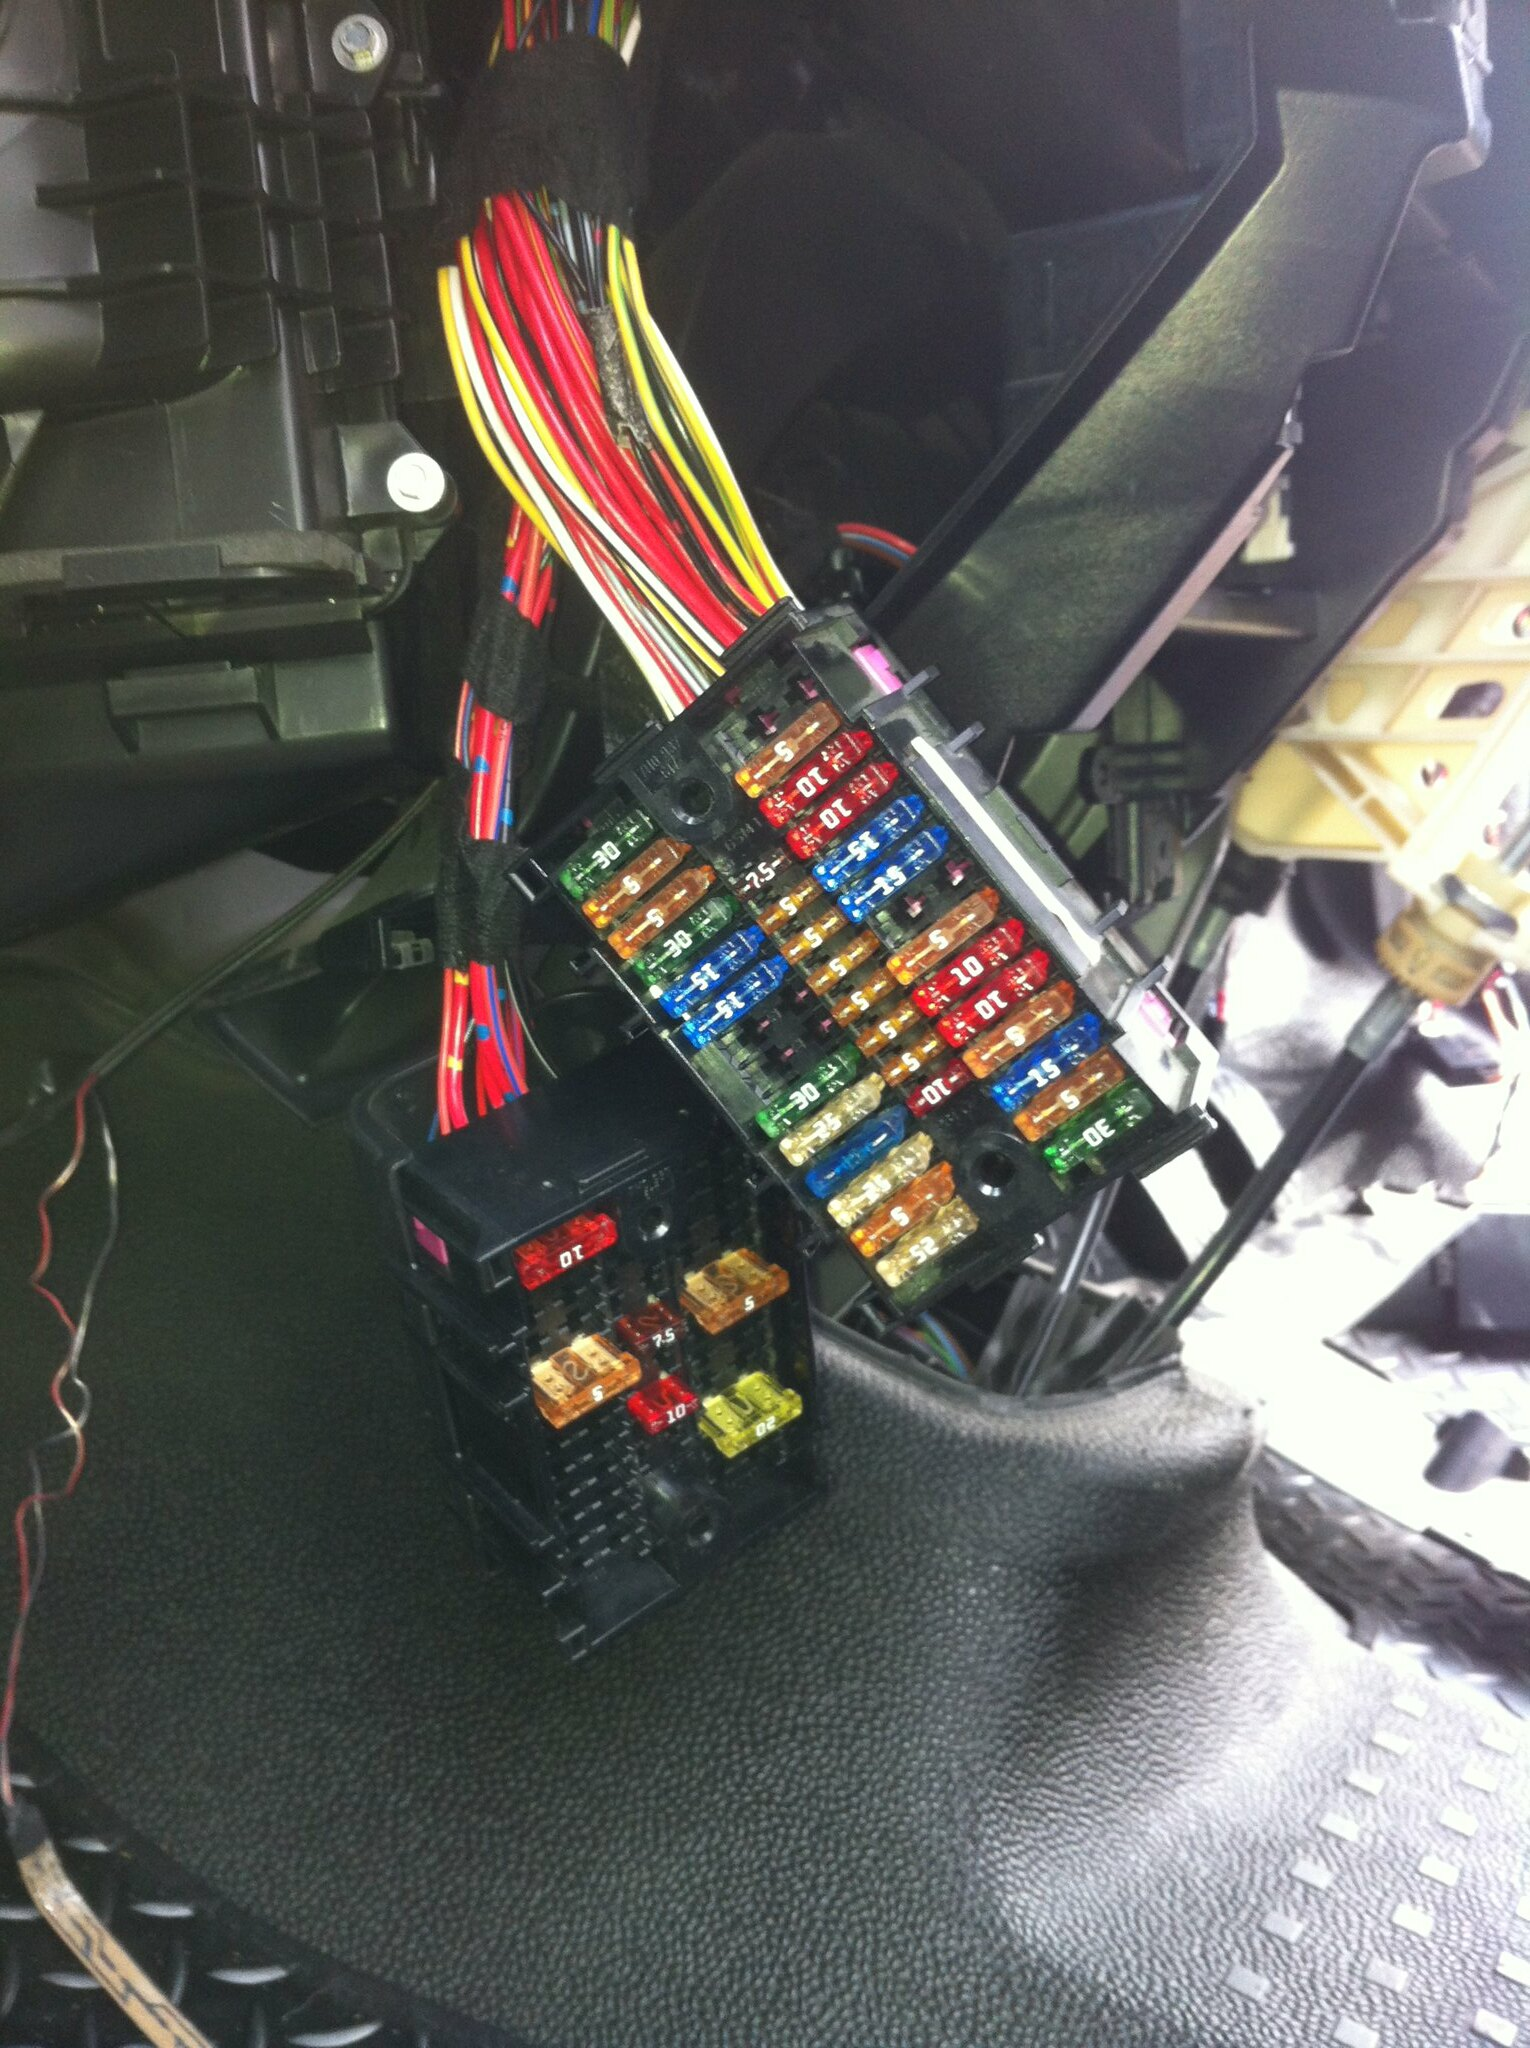 vw t fuse box wiring diagram vw image wiring diagram vw t6 fuse diagram vw image wiring diagram on vw t4 fuse box wiring